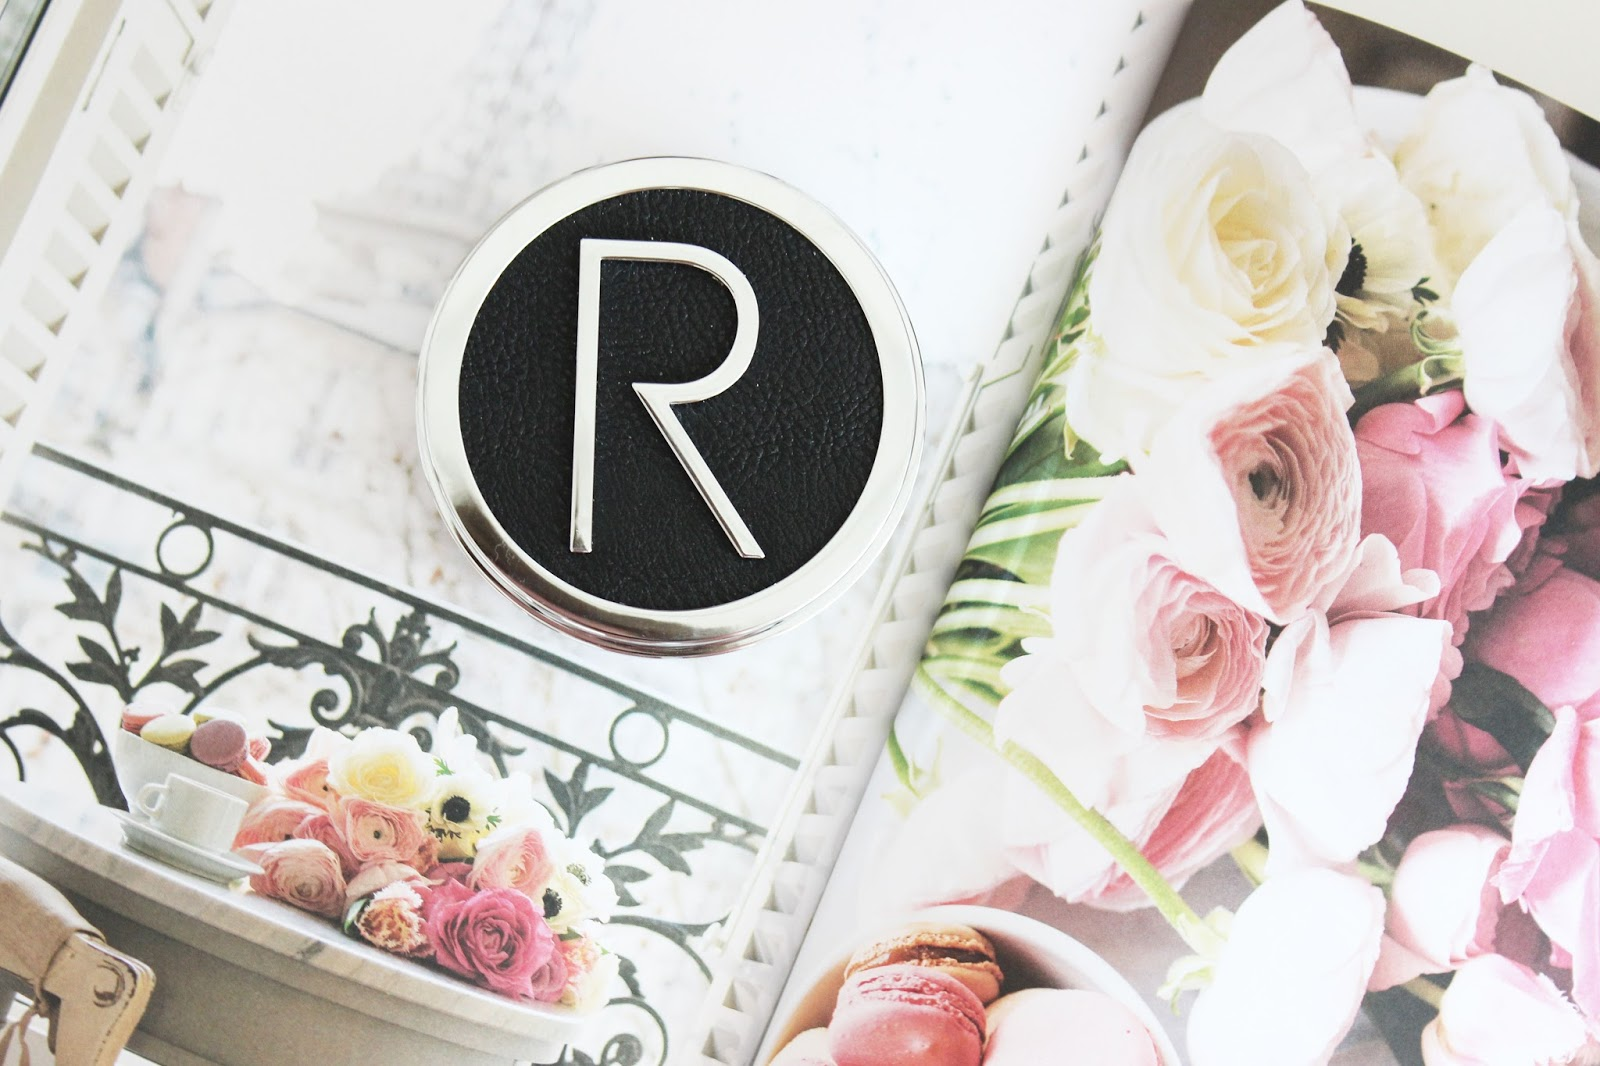 Instaglam Compact Deluxe Contour Powder by Rodial #14